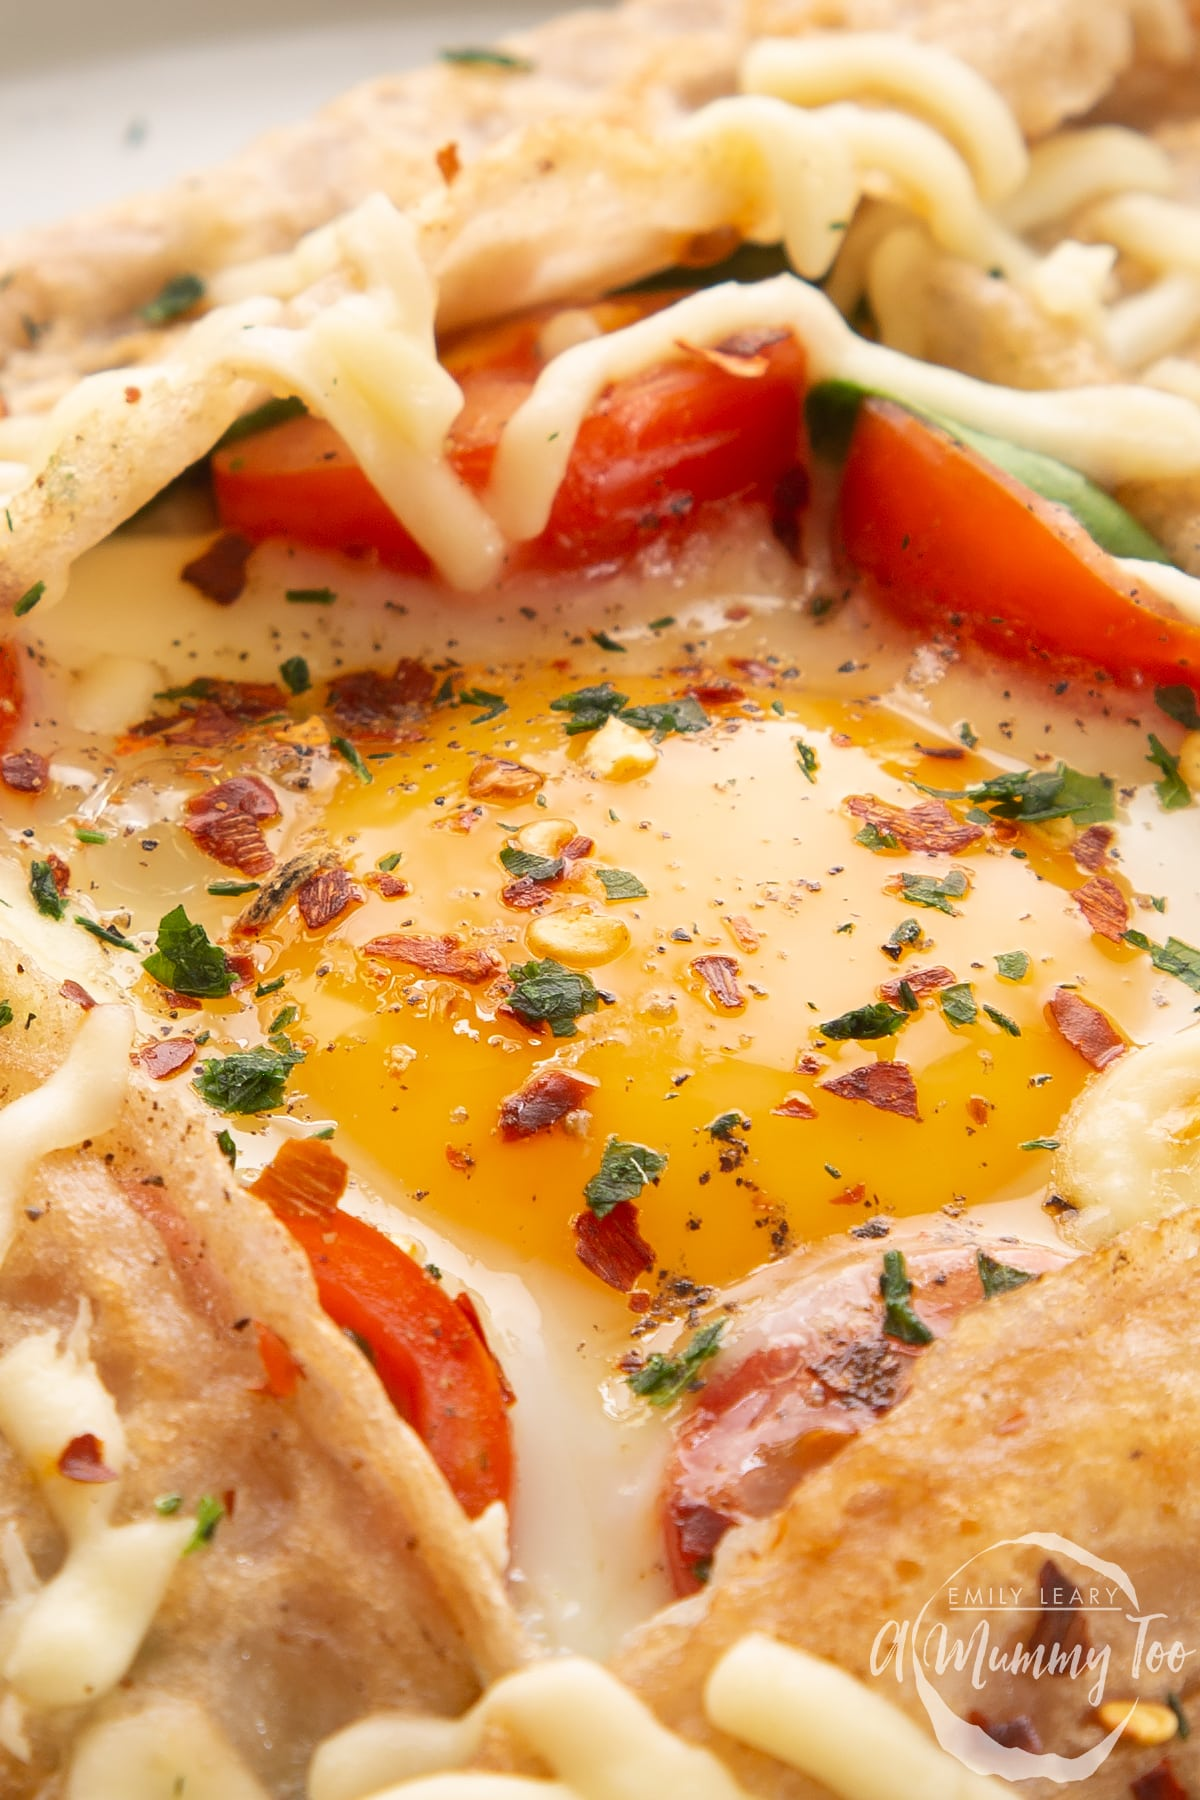 Close up on the yolk in a buckwheat galette filled with spinach, tomatoes, cheese and a lightly cooked egg.